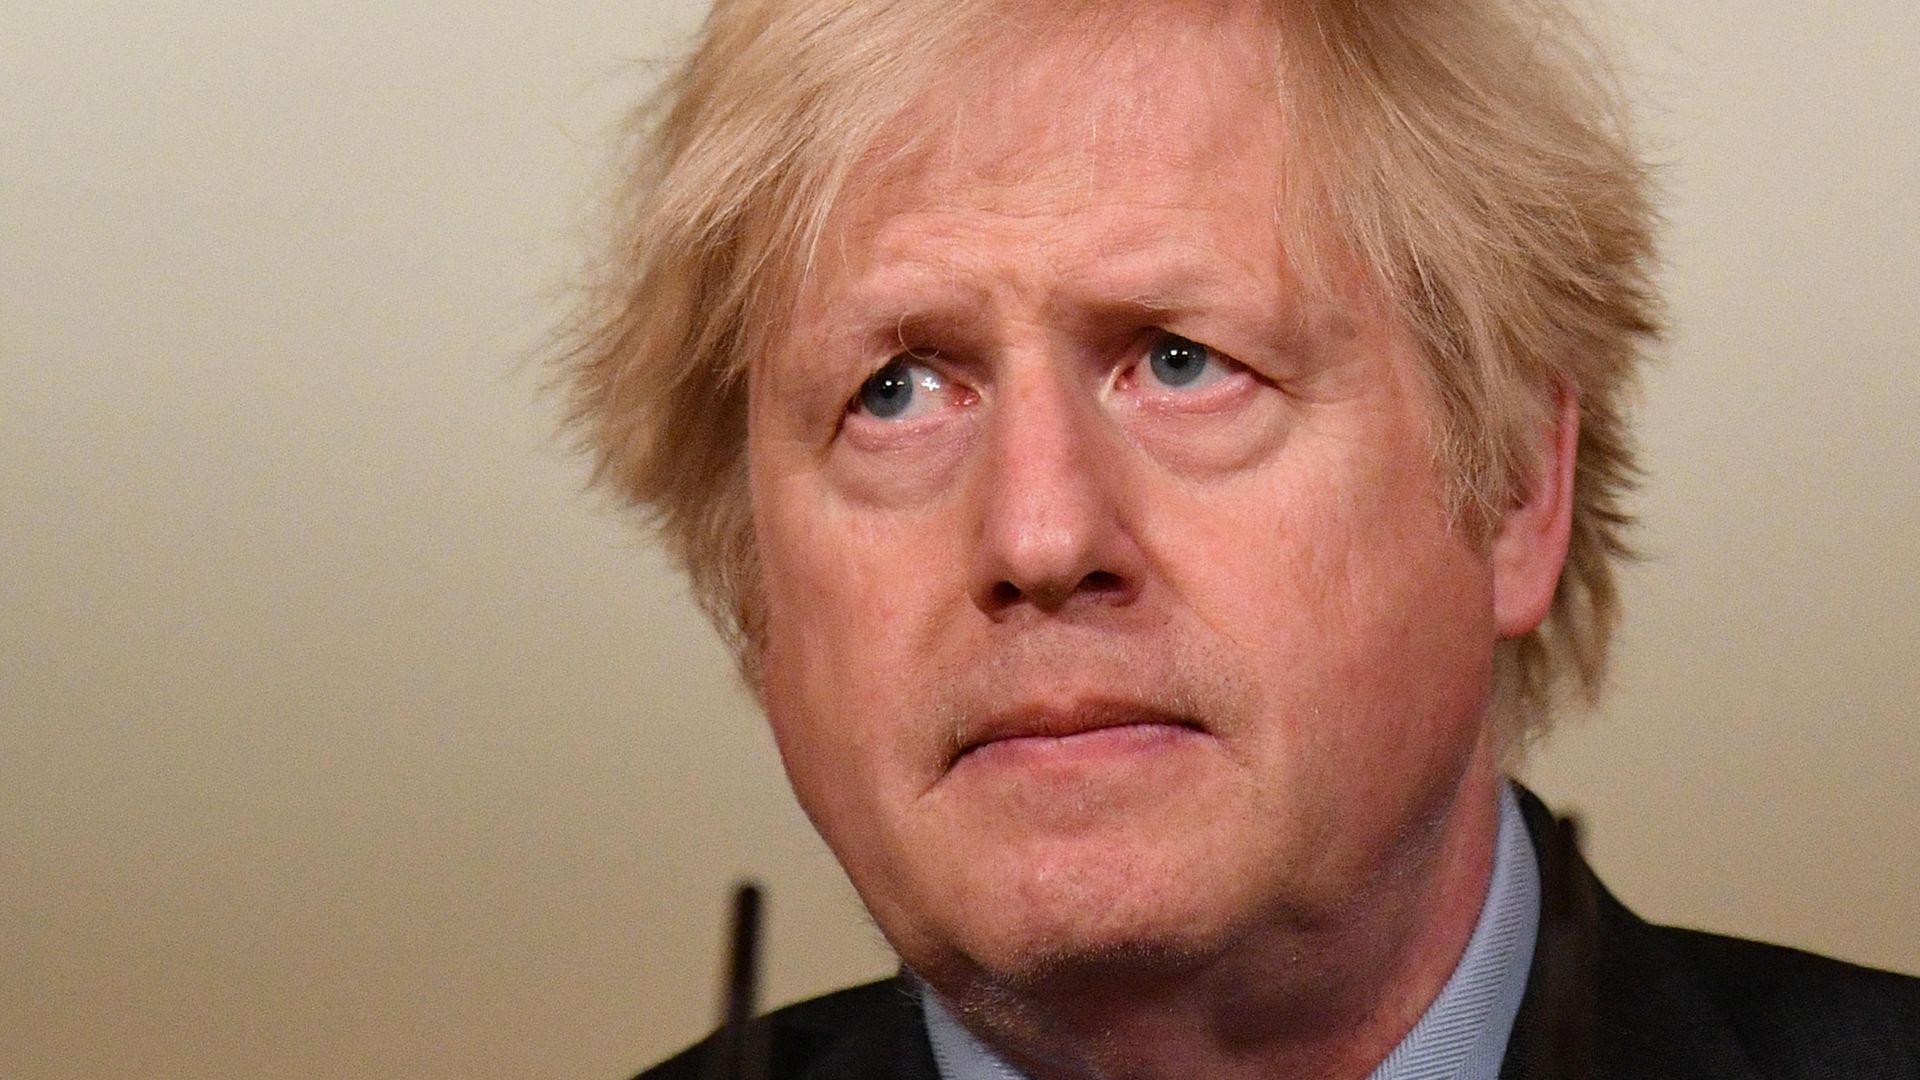 Prime minister Boris Johnson during a media briefing in Downing Street, London, on coronavirus (Covid-19) - Credit: PA